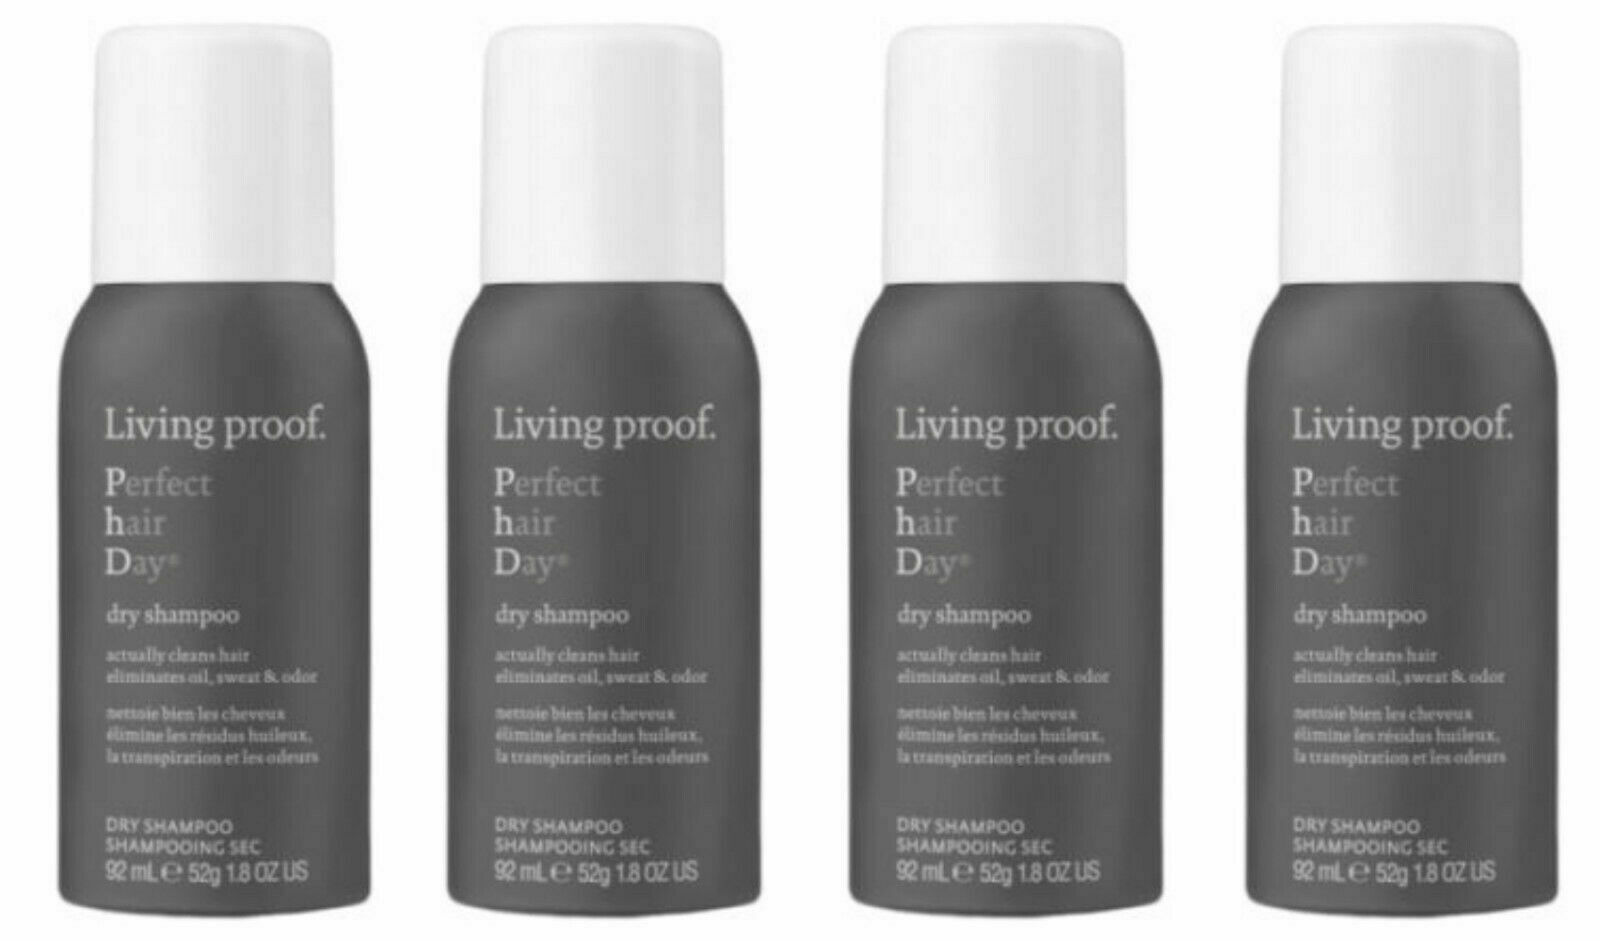 Living Proof Perfect Hair Day Dry Shampoo 1.8oz